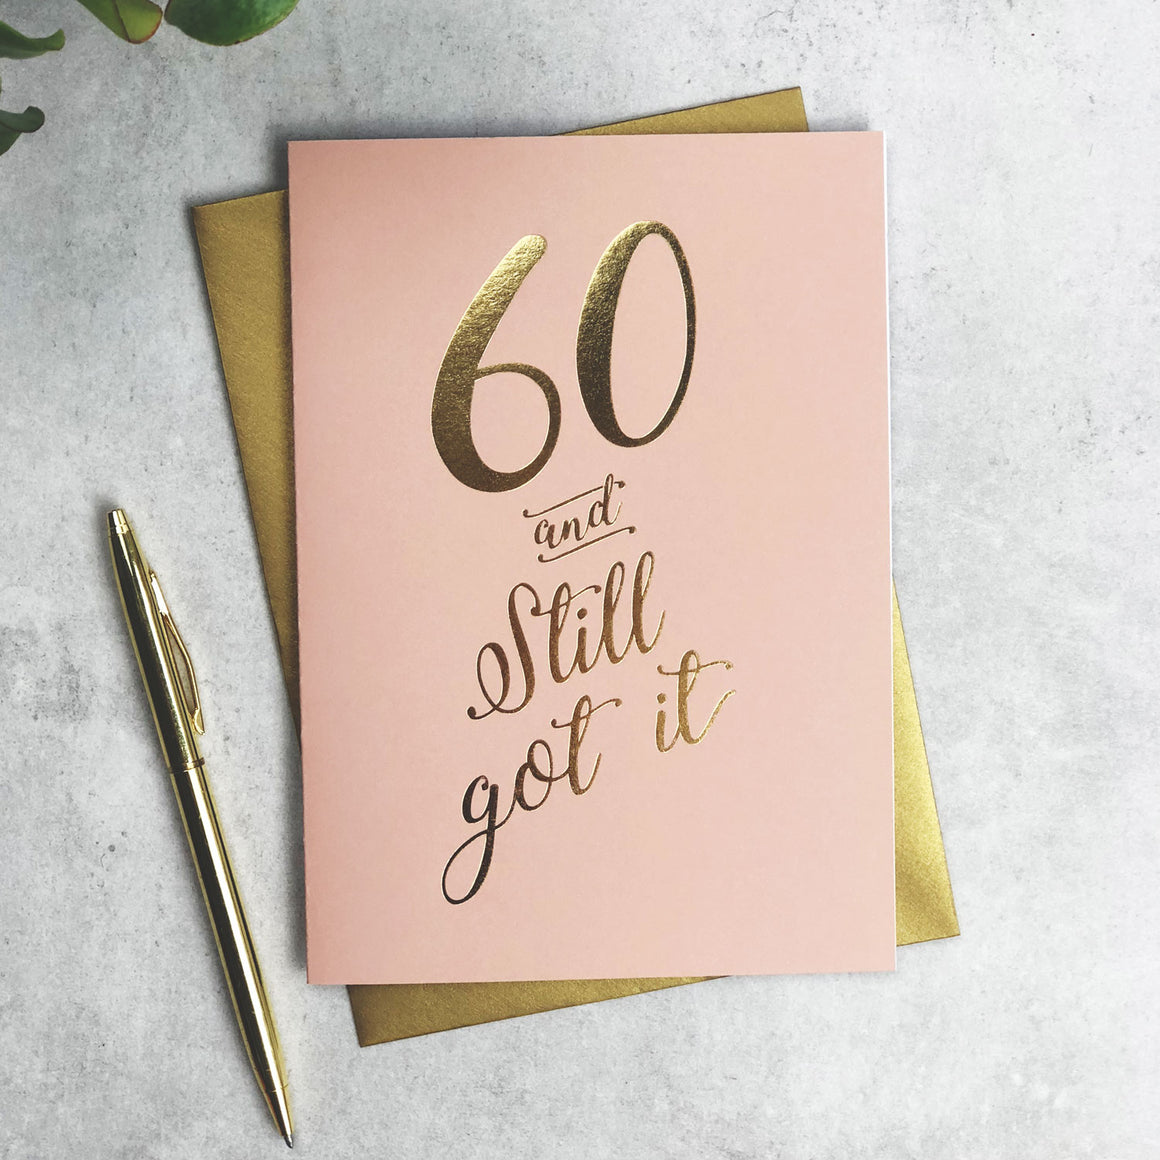 60 and Still Got It elegant birthday card